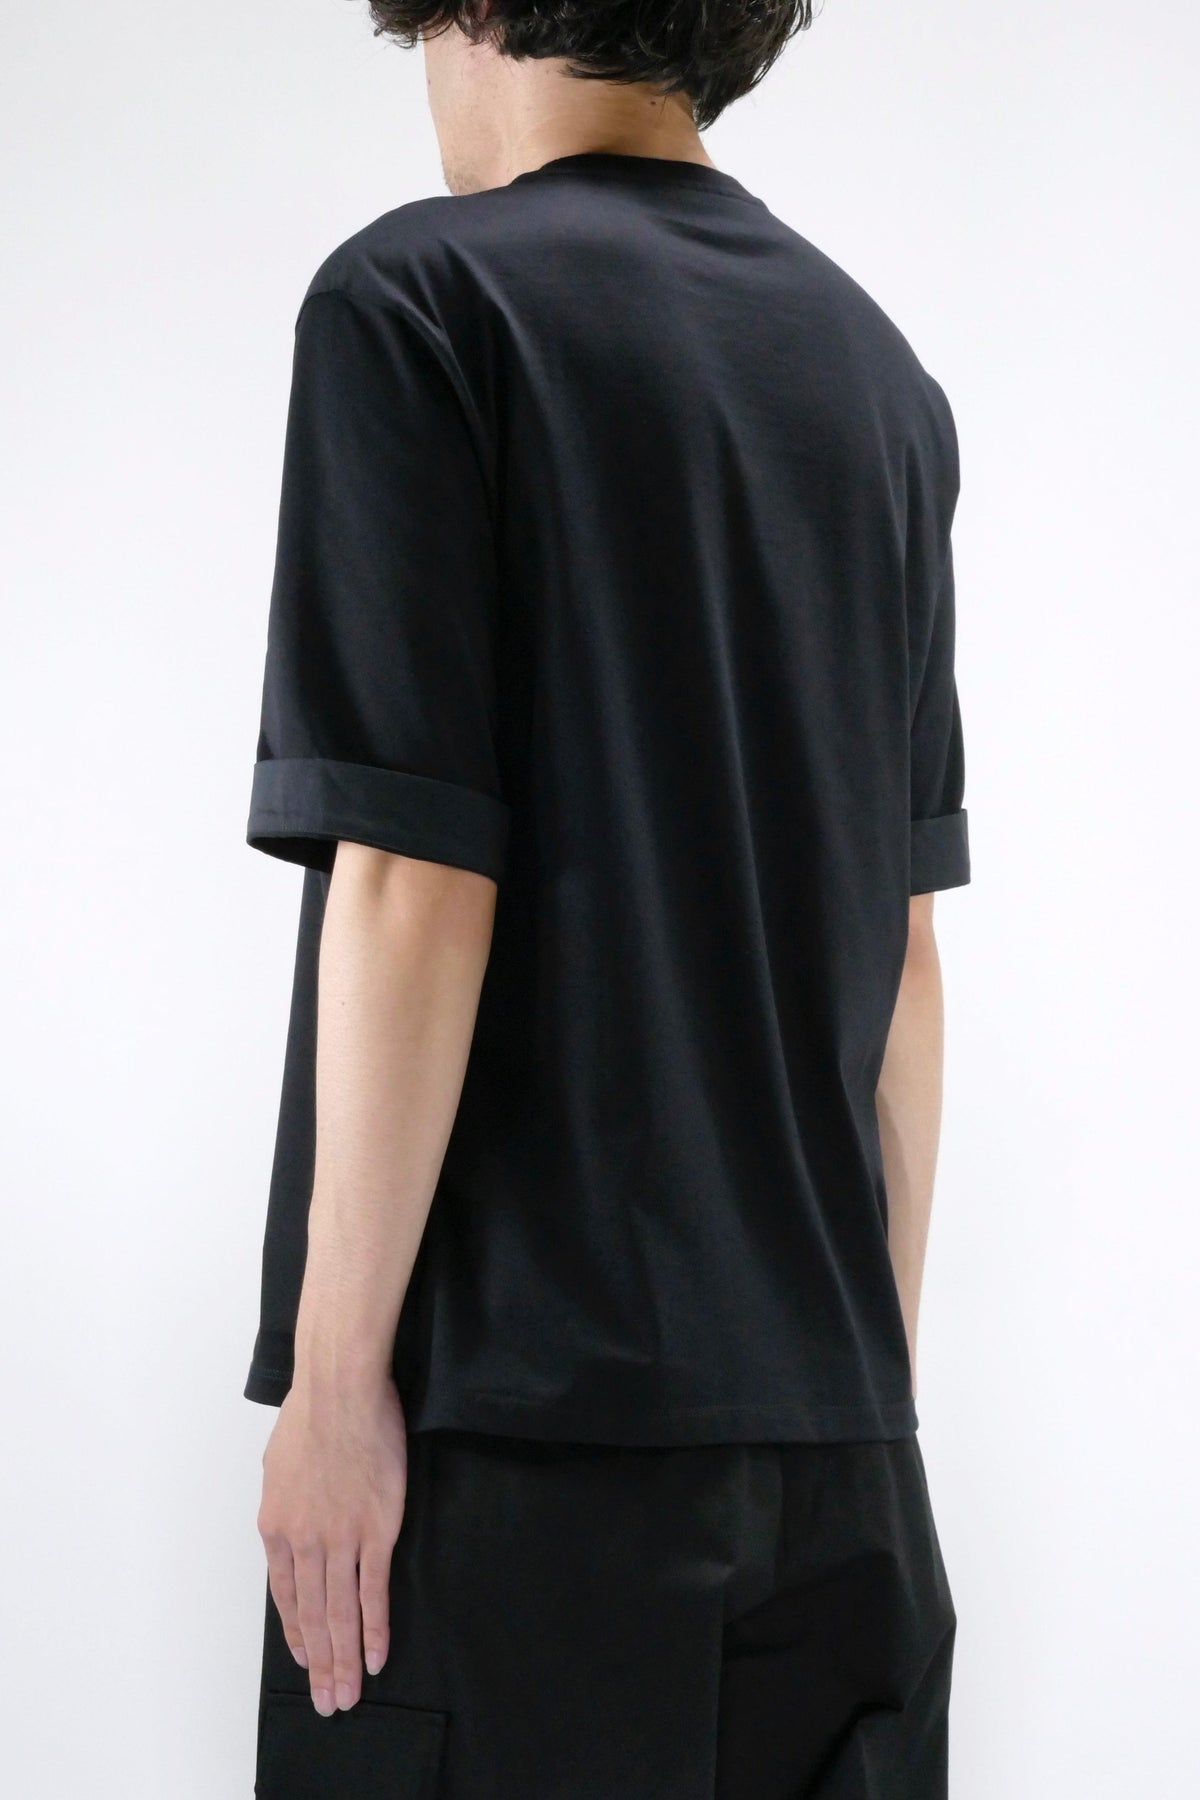 Neil Barrett Flaming Star Tee Black